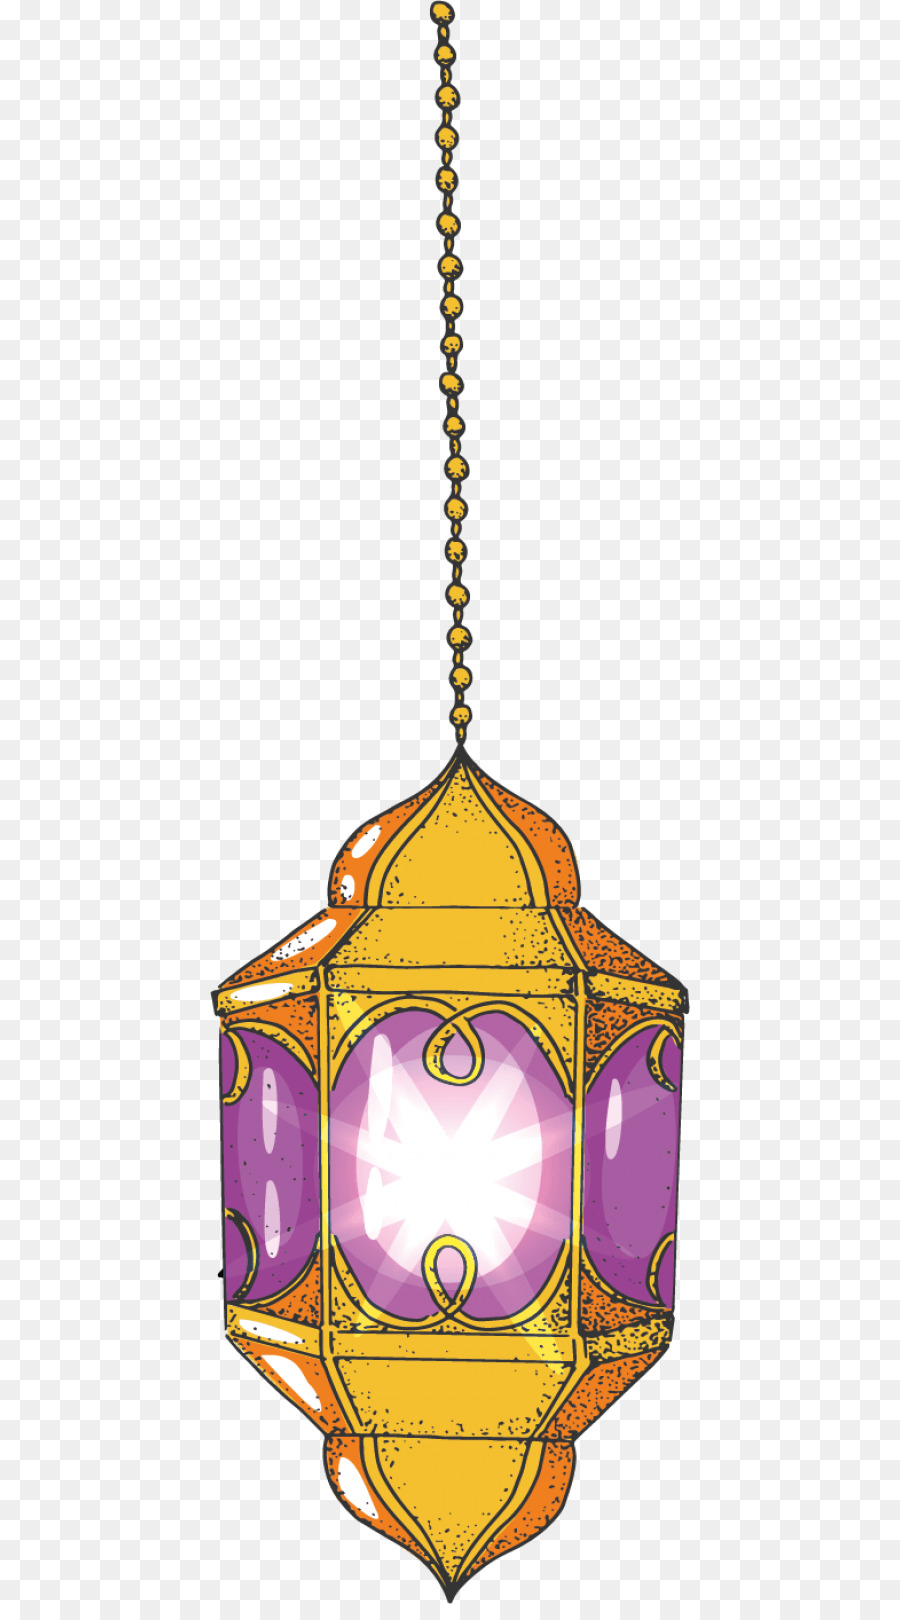 eid mubarak lantern png download 480 1604 free transparent fanous png download cleanpng kisspng eid mubarak lantern png download 480